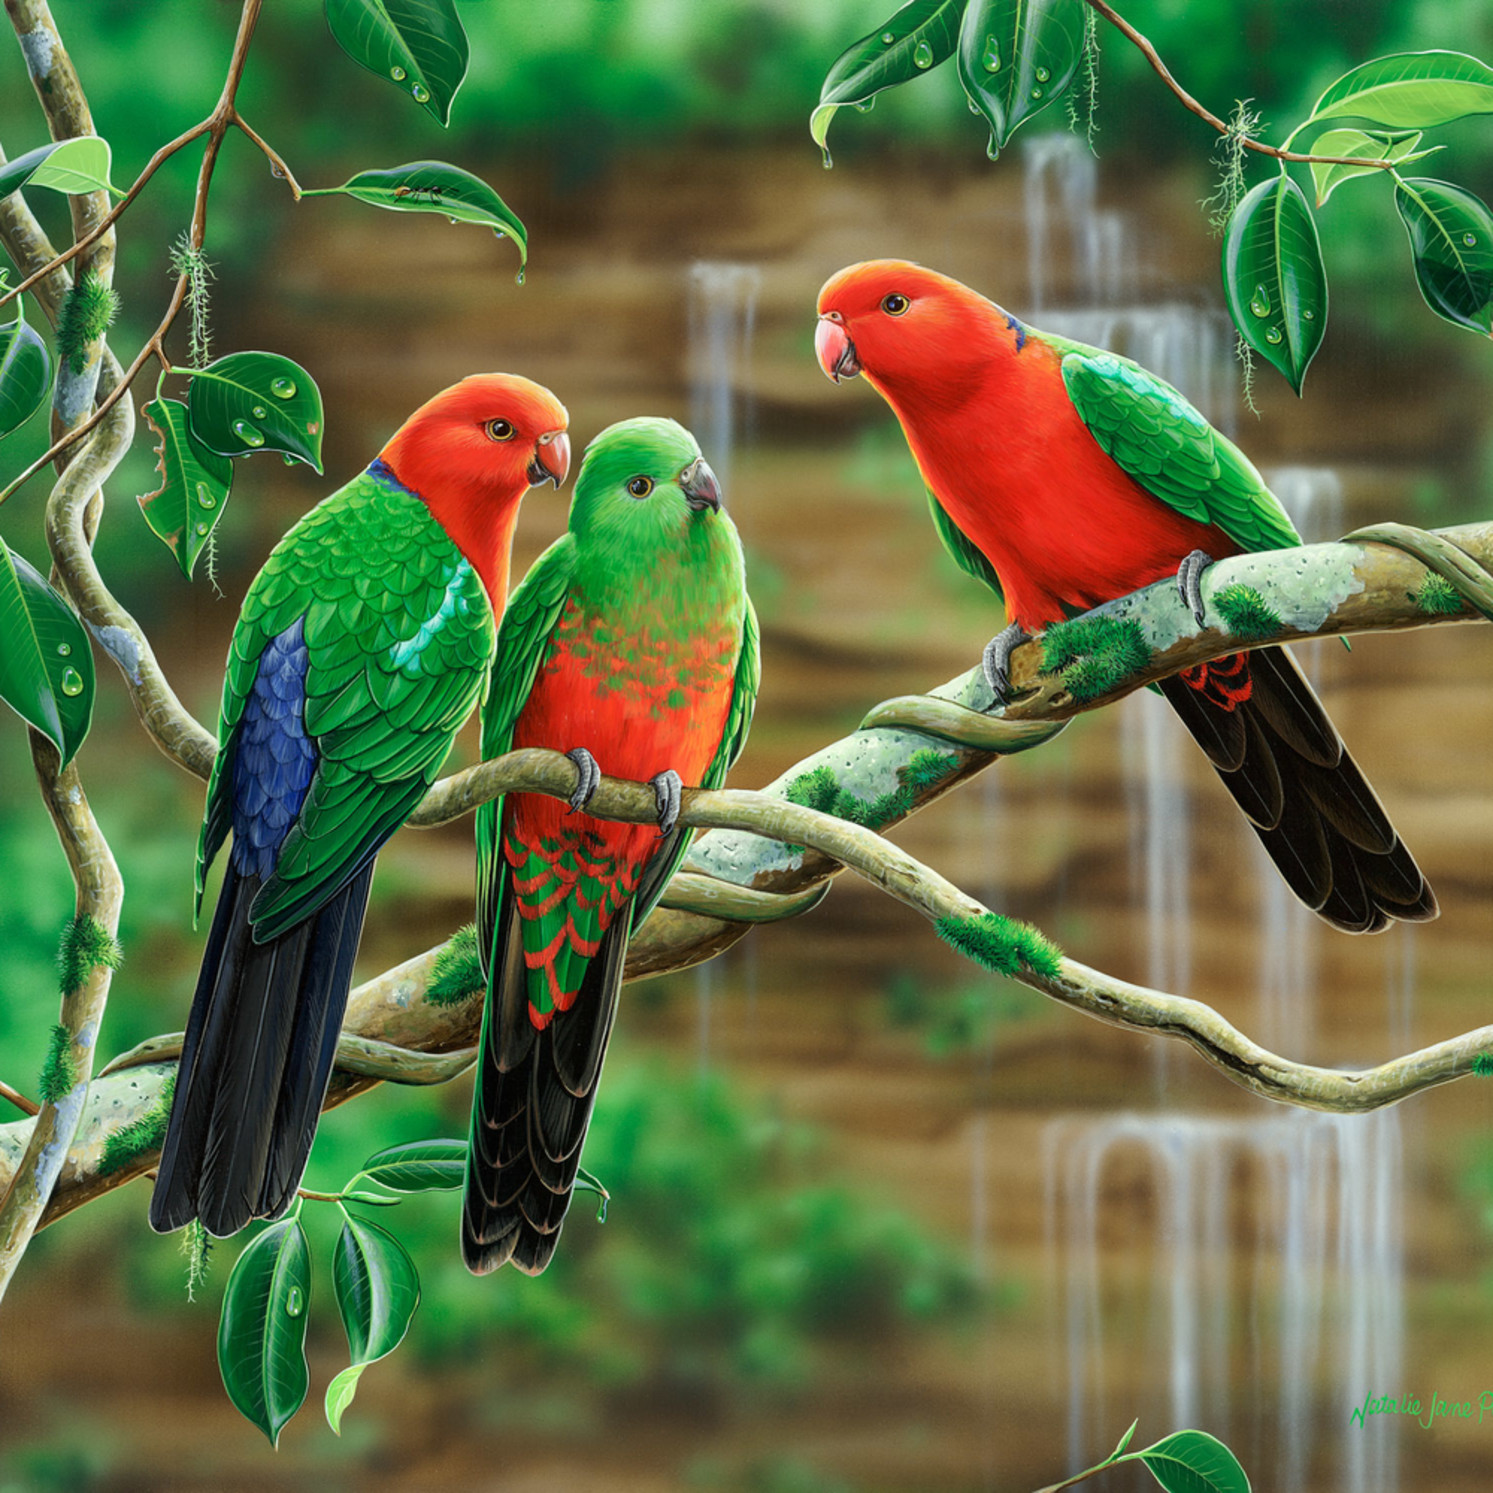 Kings of the forest   king parrots natalie jane parker australian native wildlife fb7jjs